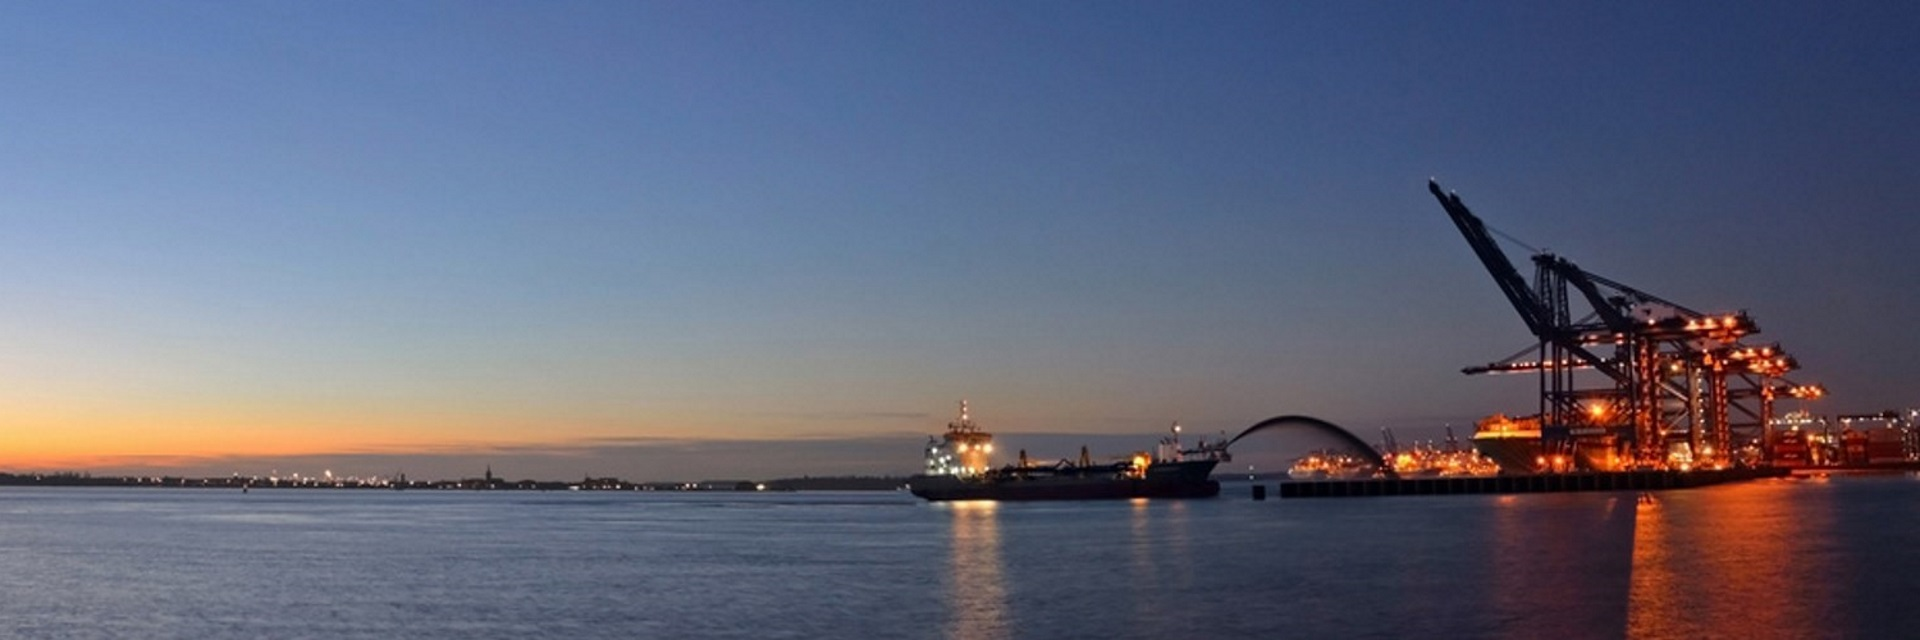 port of Felistowe at sunset - container ship loading